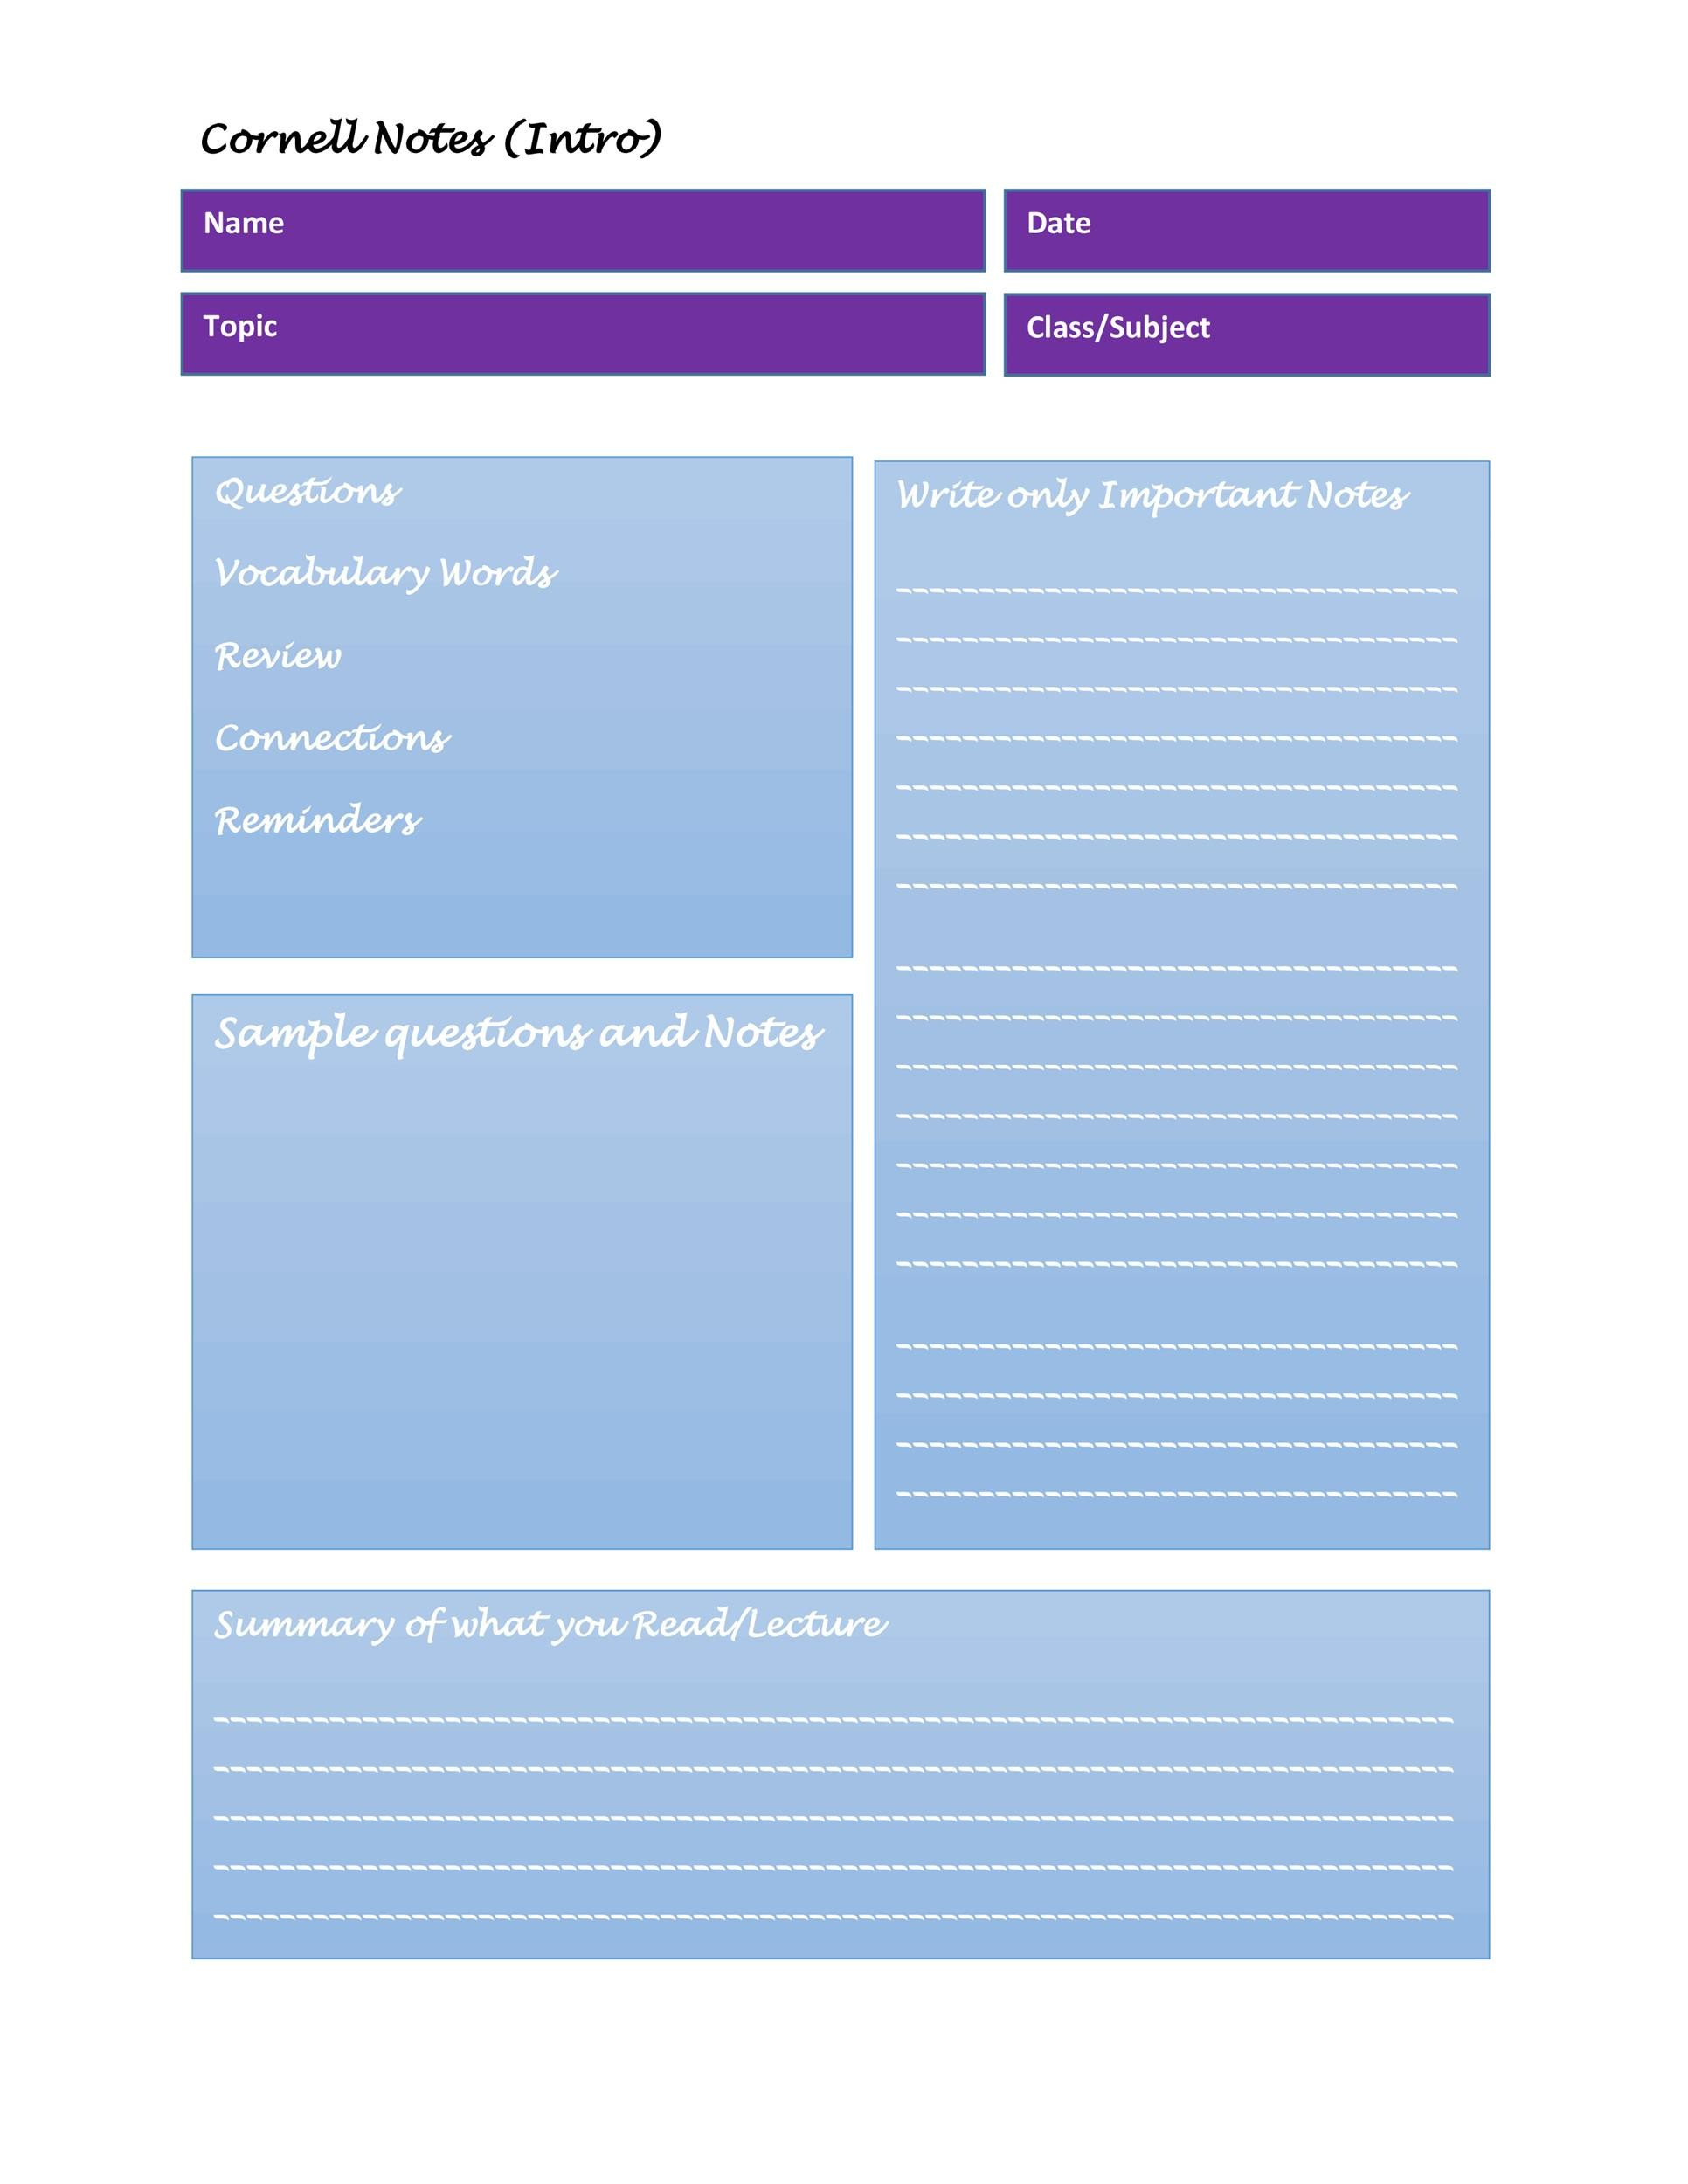 Free Cornell Notes Template 23